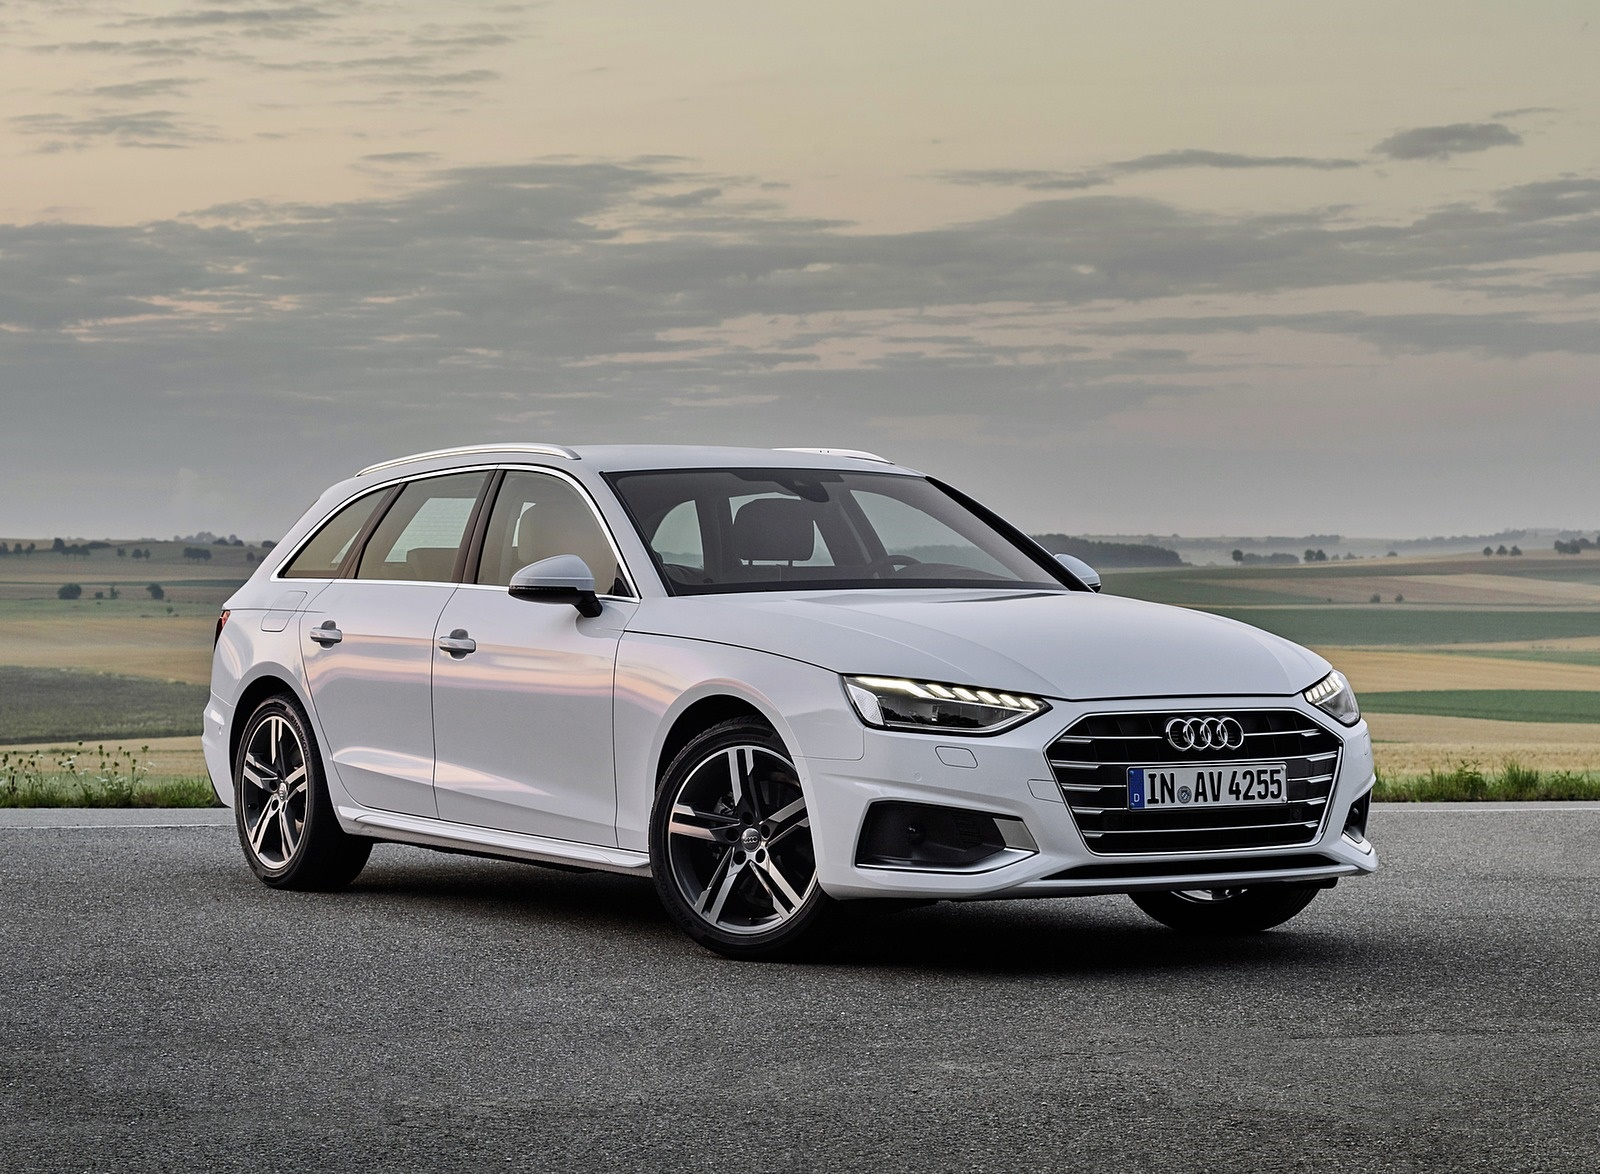 2020 Audi A4 Avant g-tron (Color: Glacier White) Front Three-Quarter Wallpapers (1)